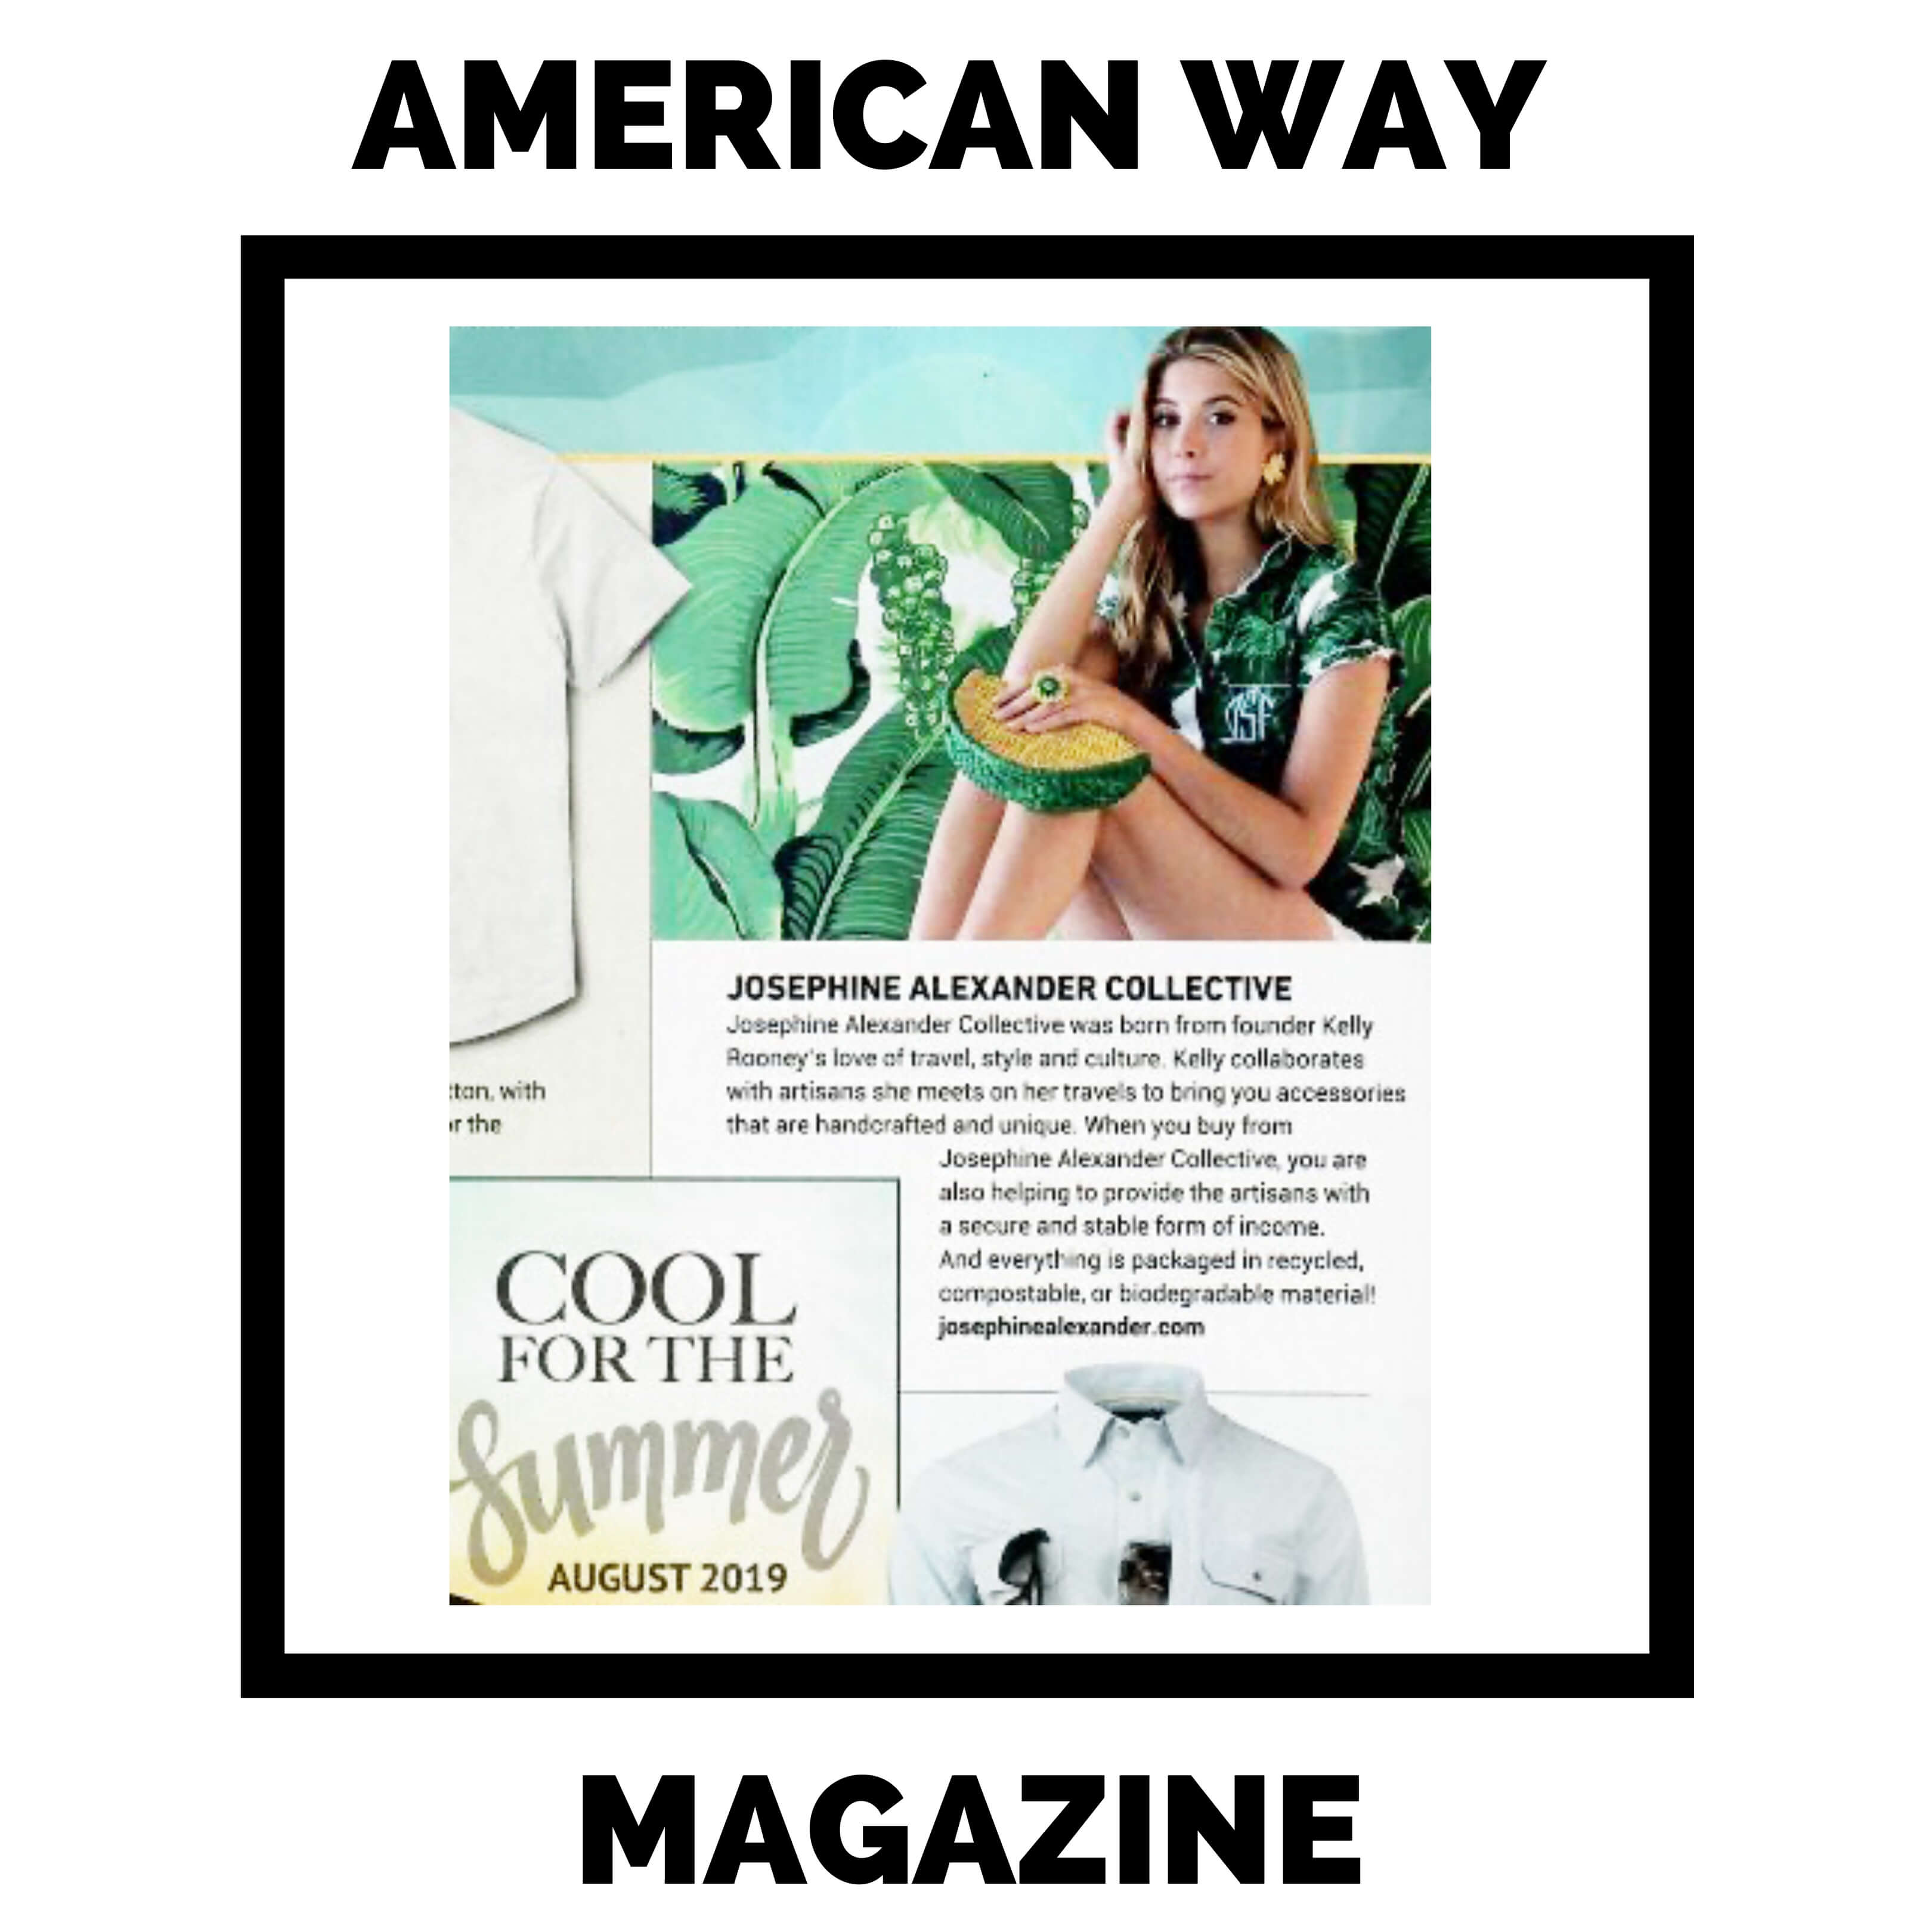 Jax featured in American Way